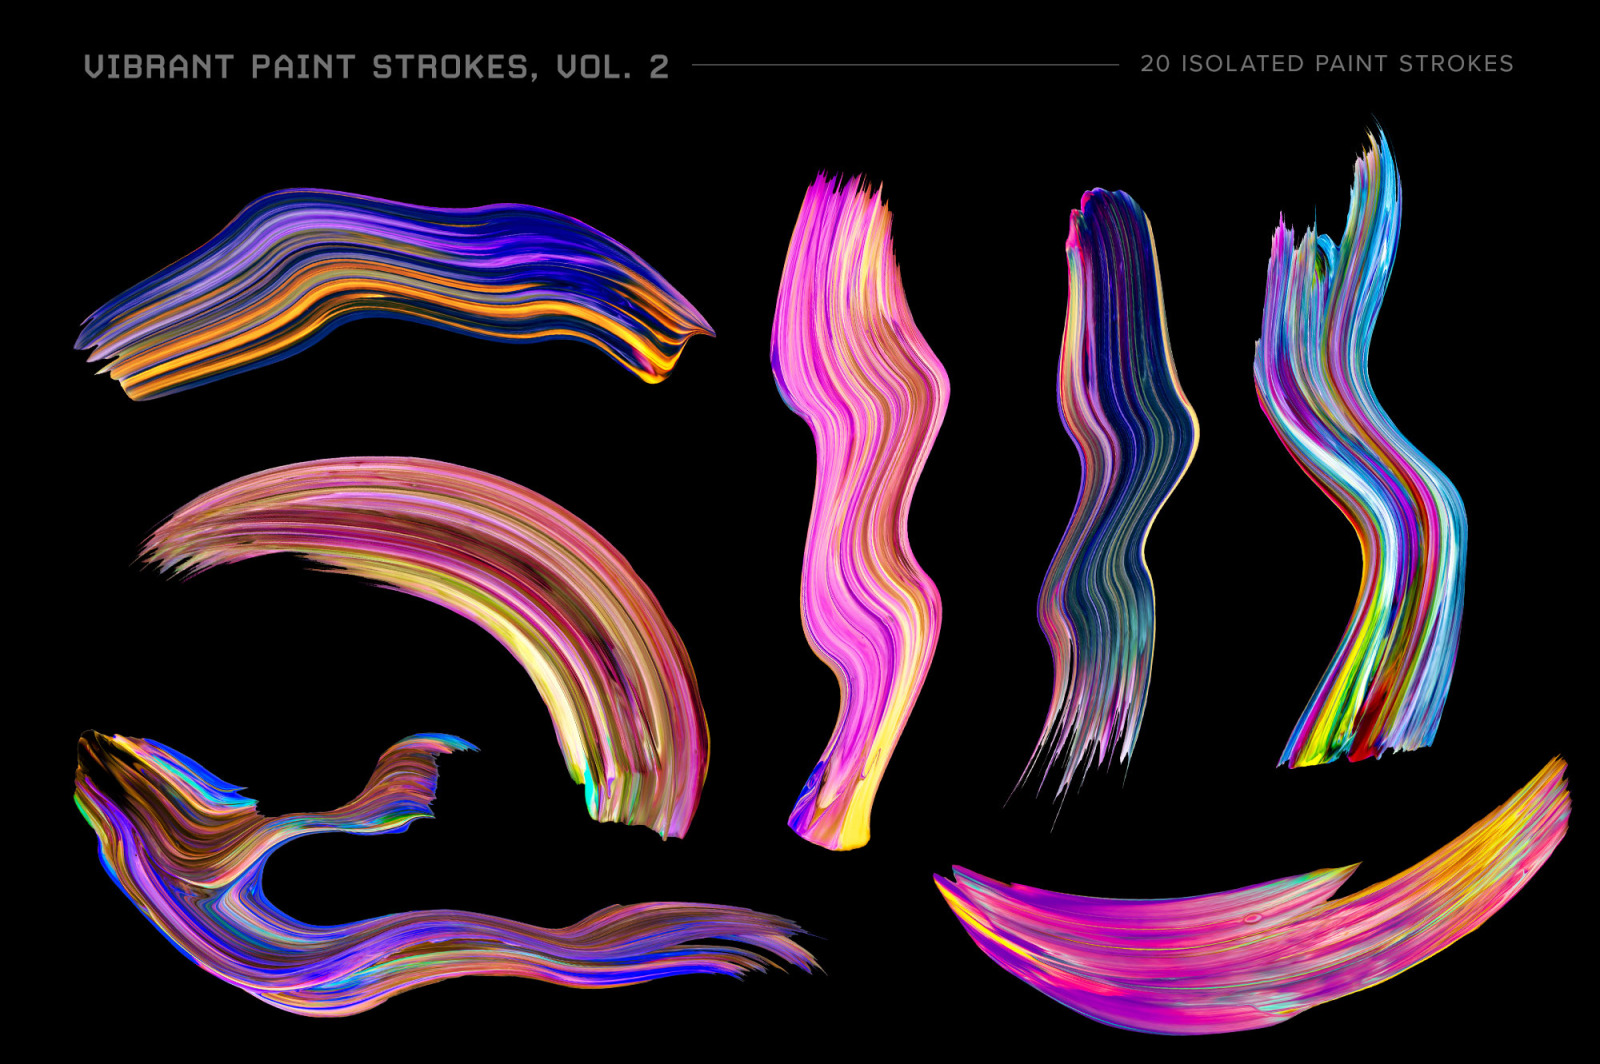 Vibrant Paint Strokes, Vol. 2